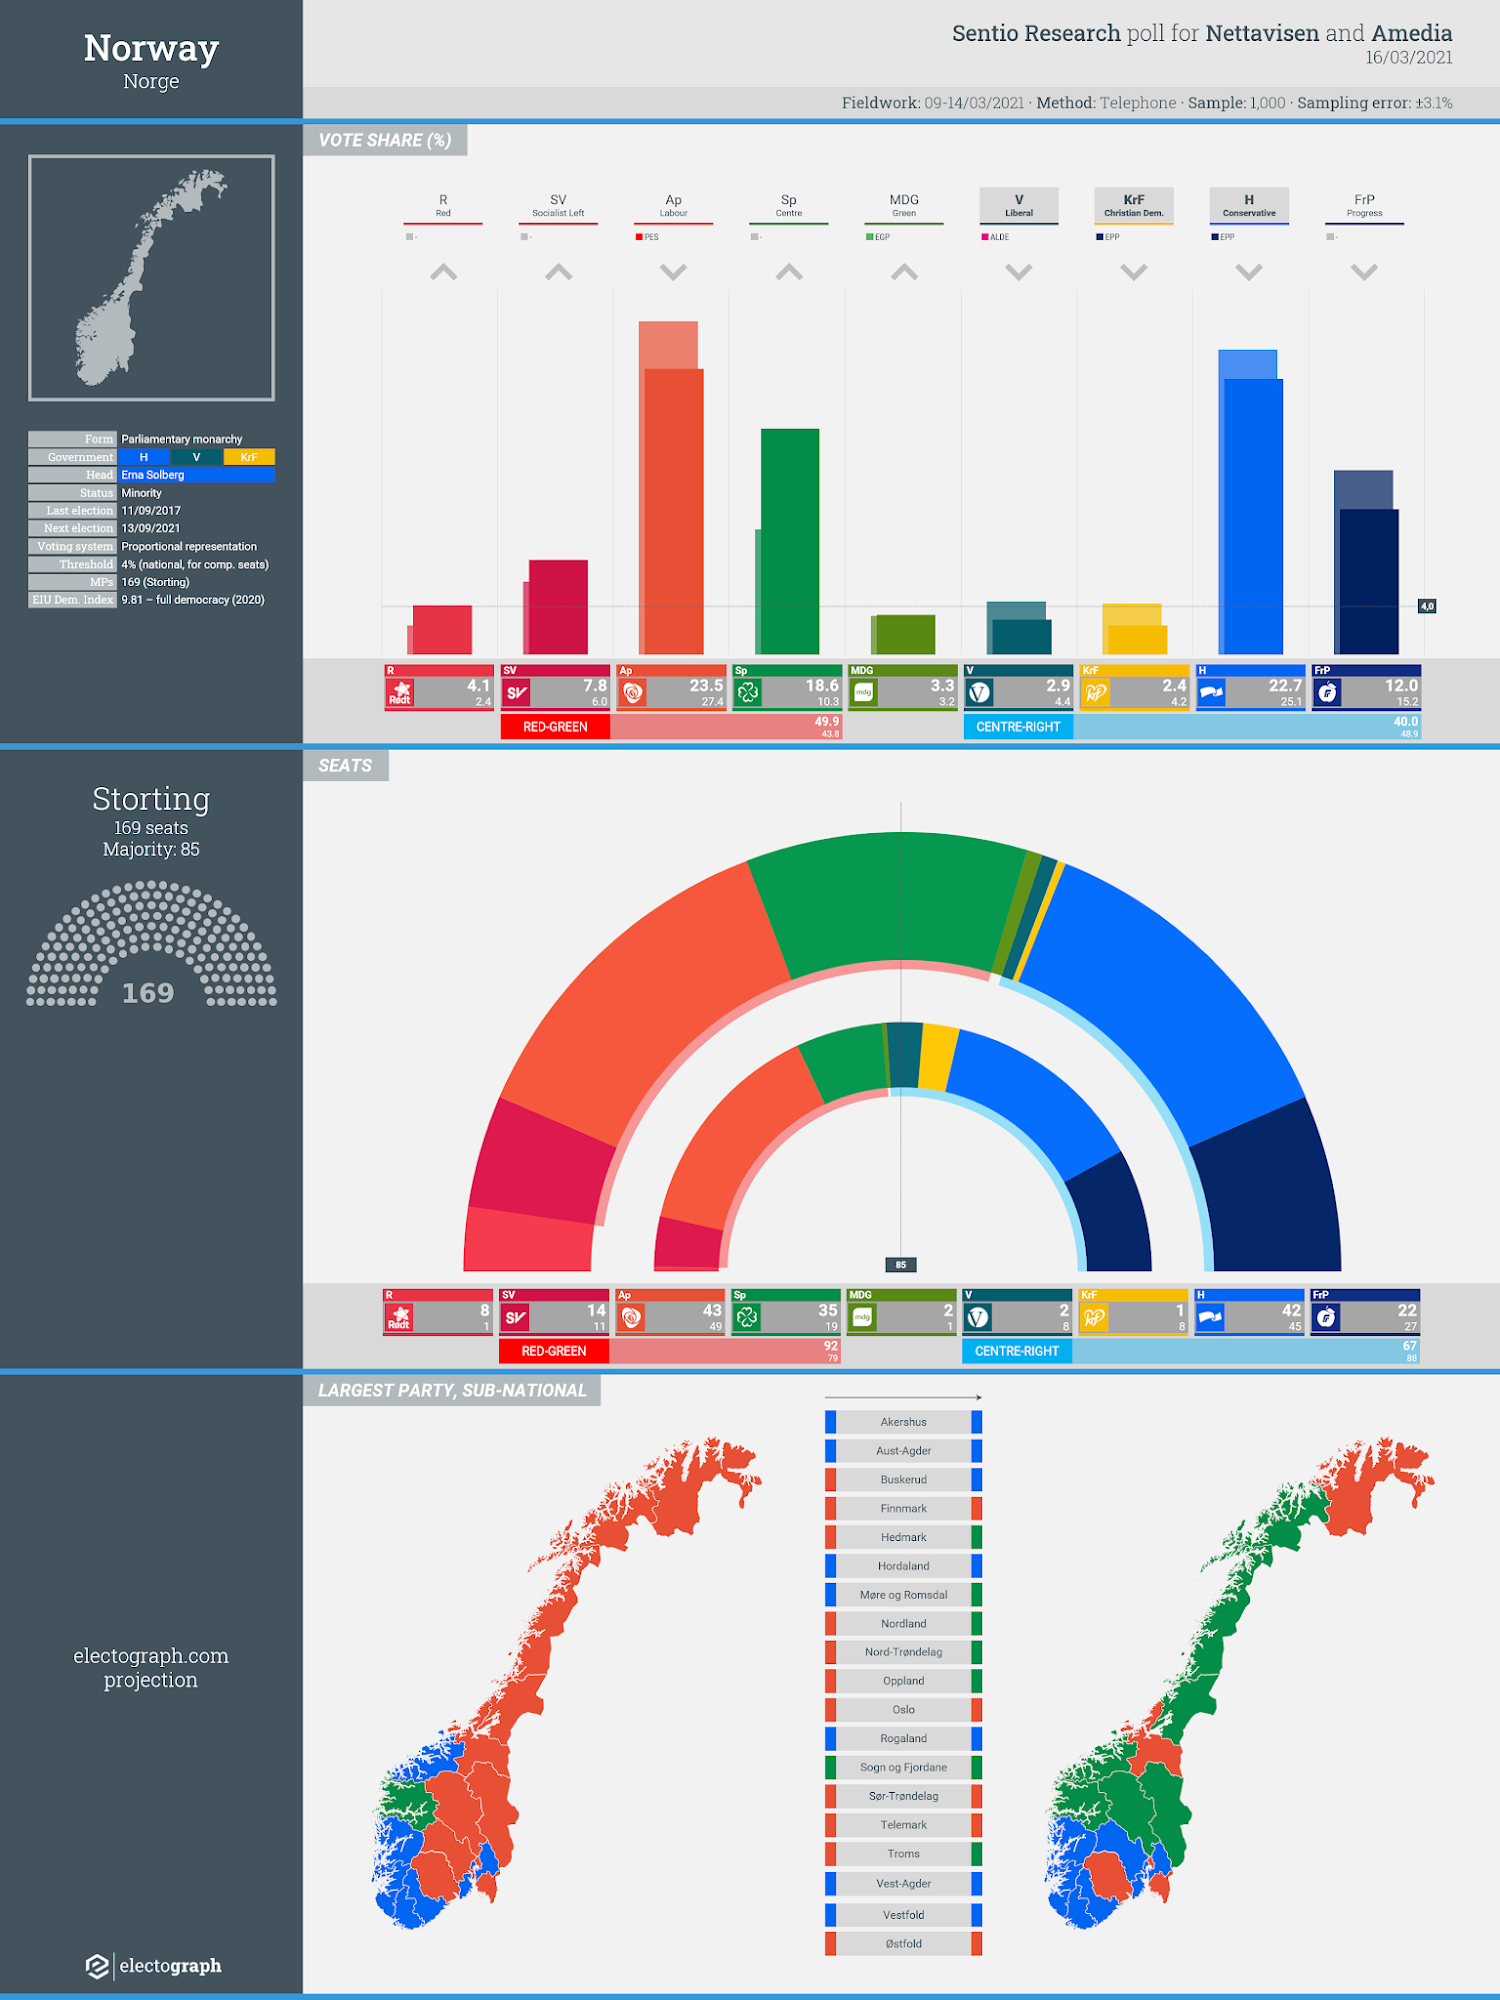 NORWAY: Sentio Research poll chart for Nettavisen and Amedia, 16 March 2021